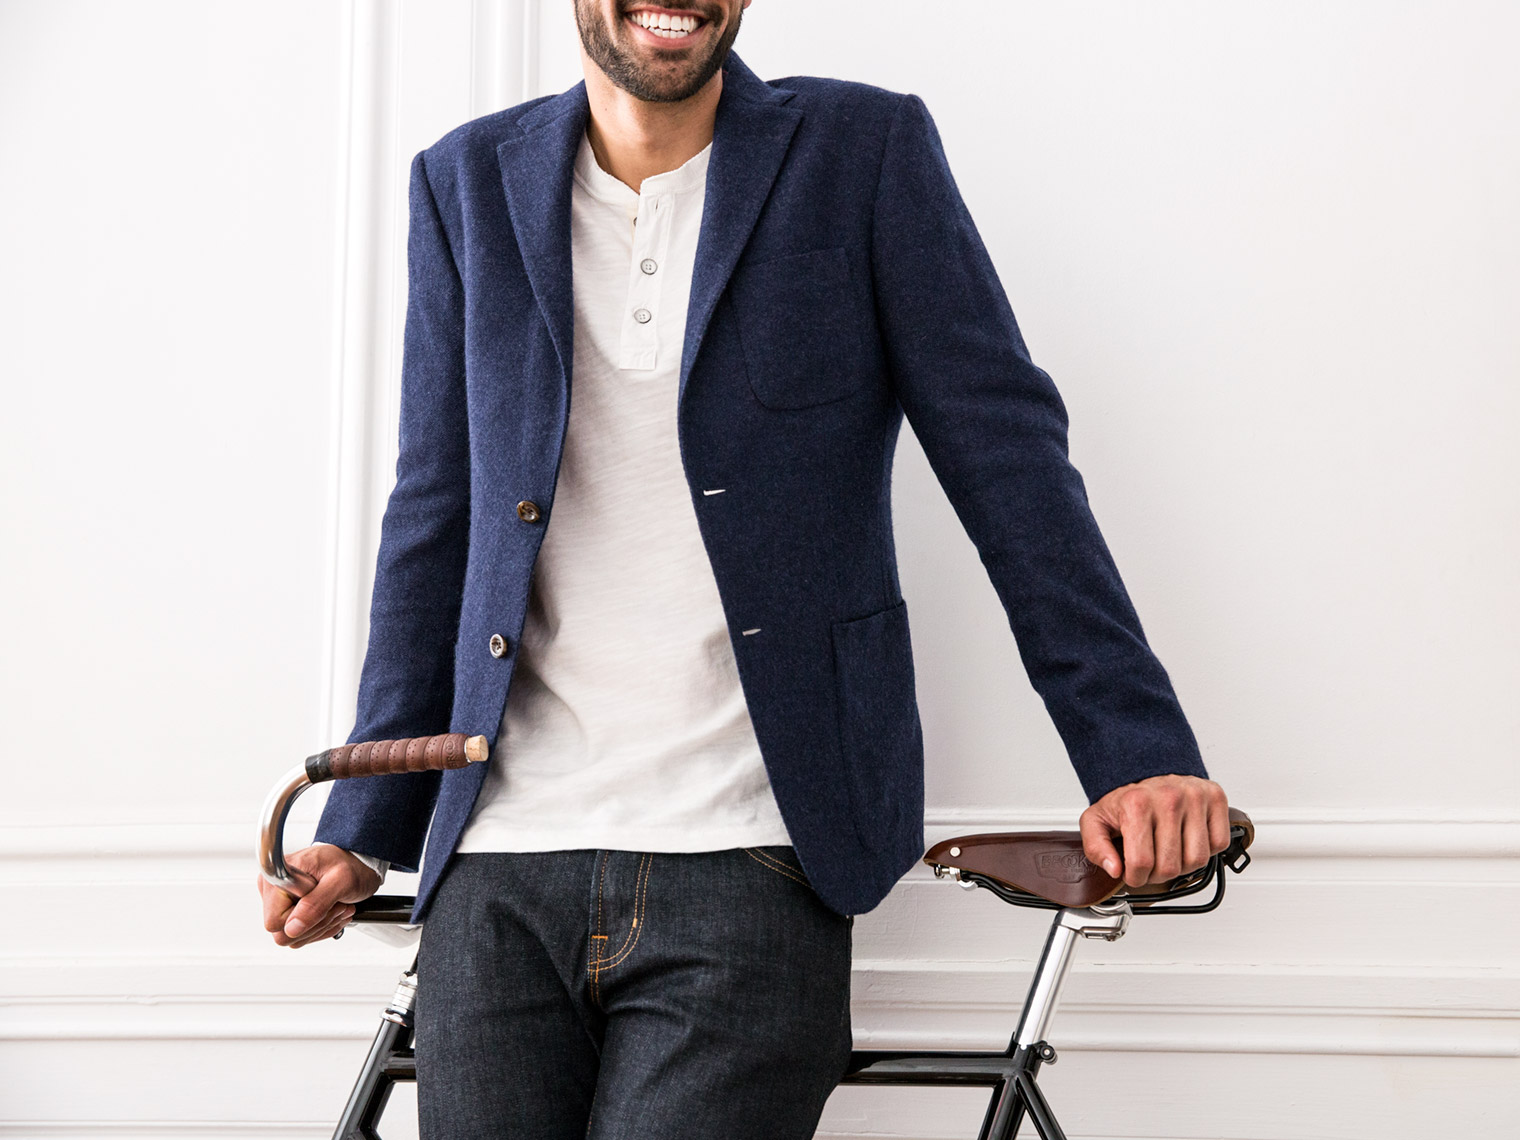 brian-sorg-tc-nyc-06-TCM_Lookbook_Adam_Bike_101-web-2